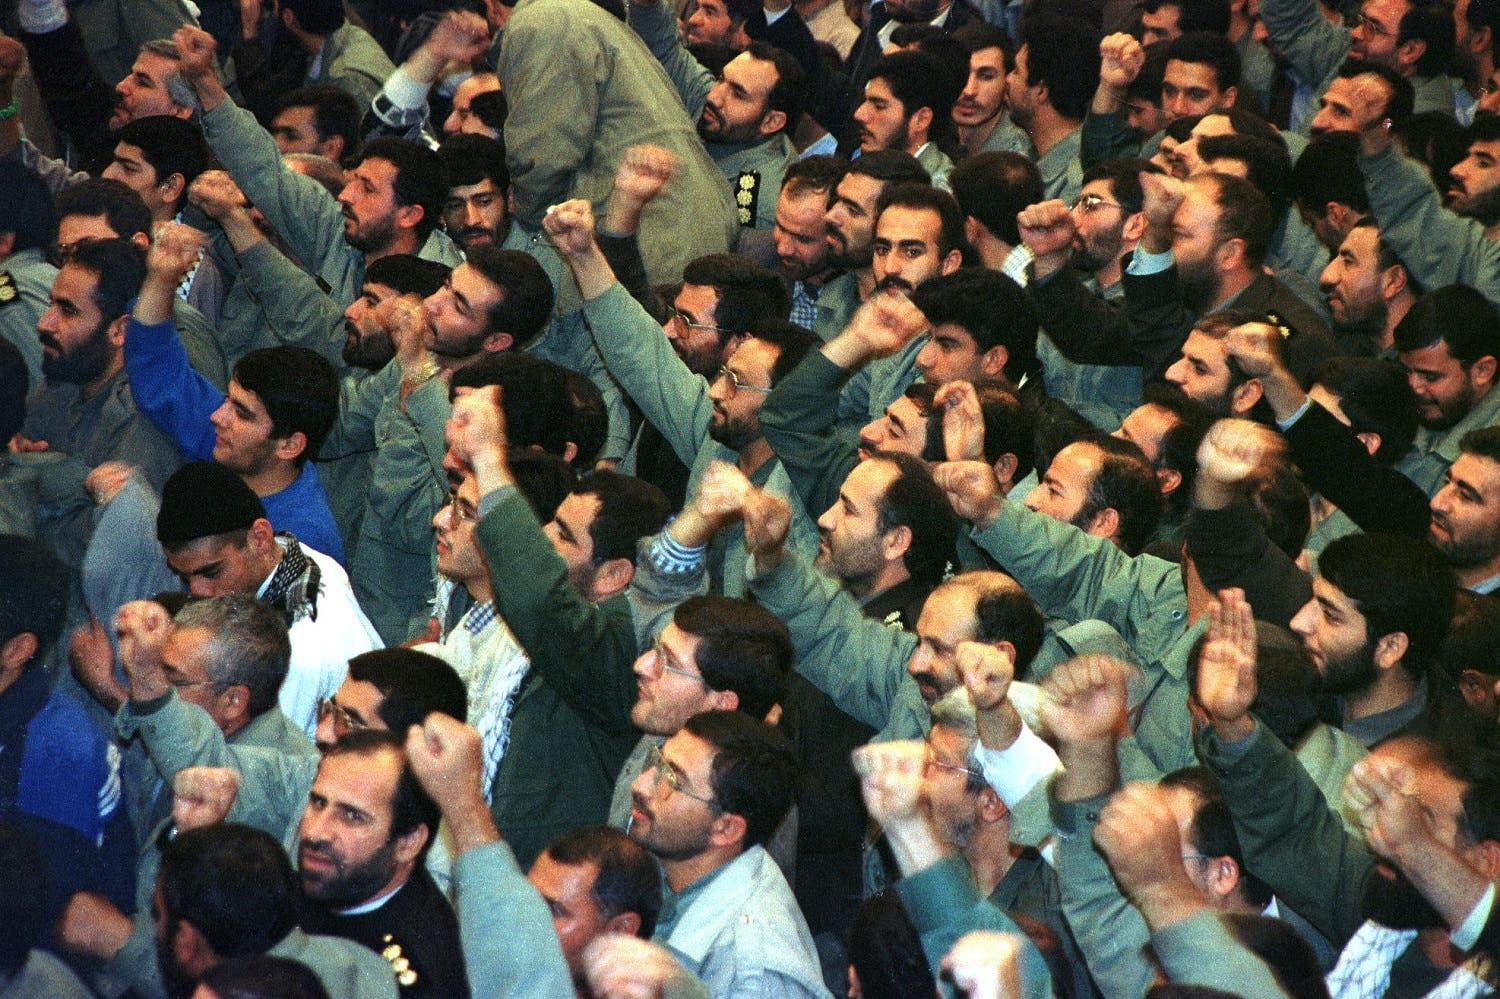 Members of the IRGC cheer during the speech of Iran's Supreme Leader Ayatollah Ali Khamenei on the occasion of IRGC Week in Tehran 13 November 1999. (AFP)